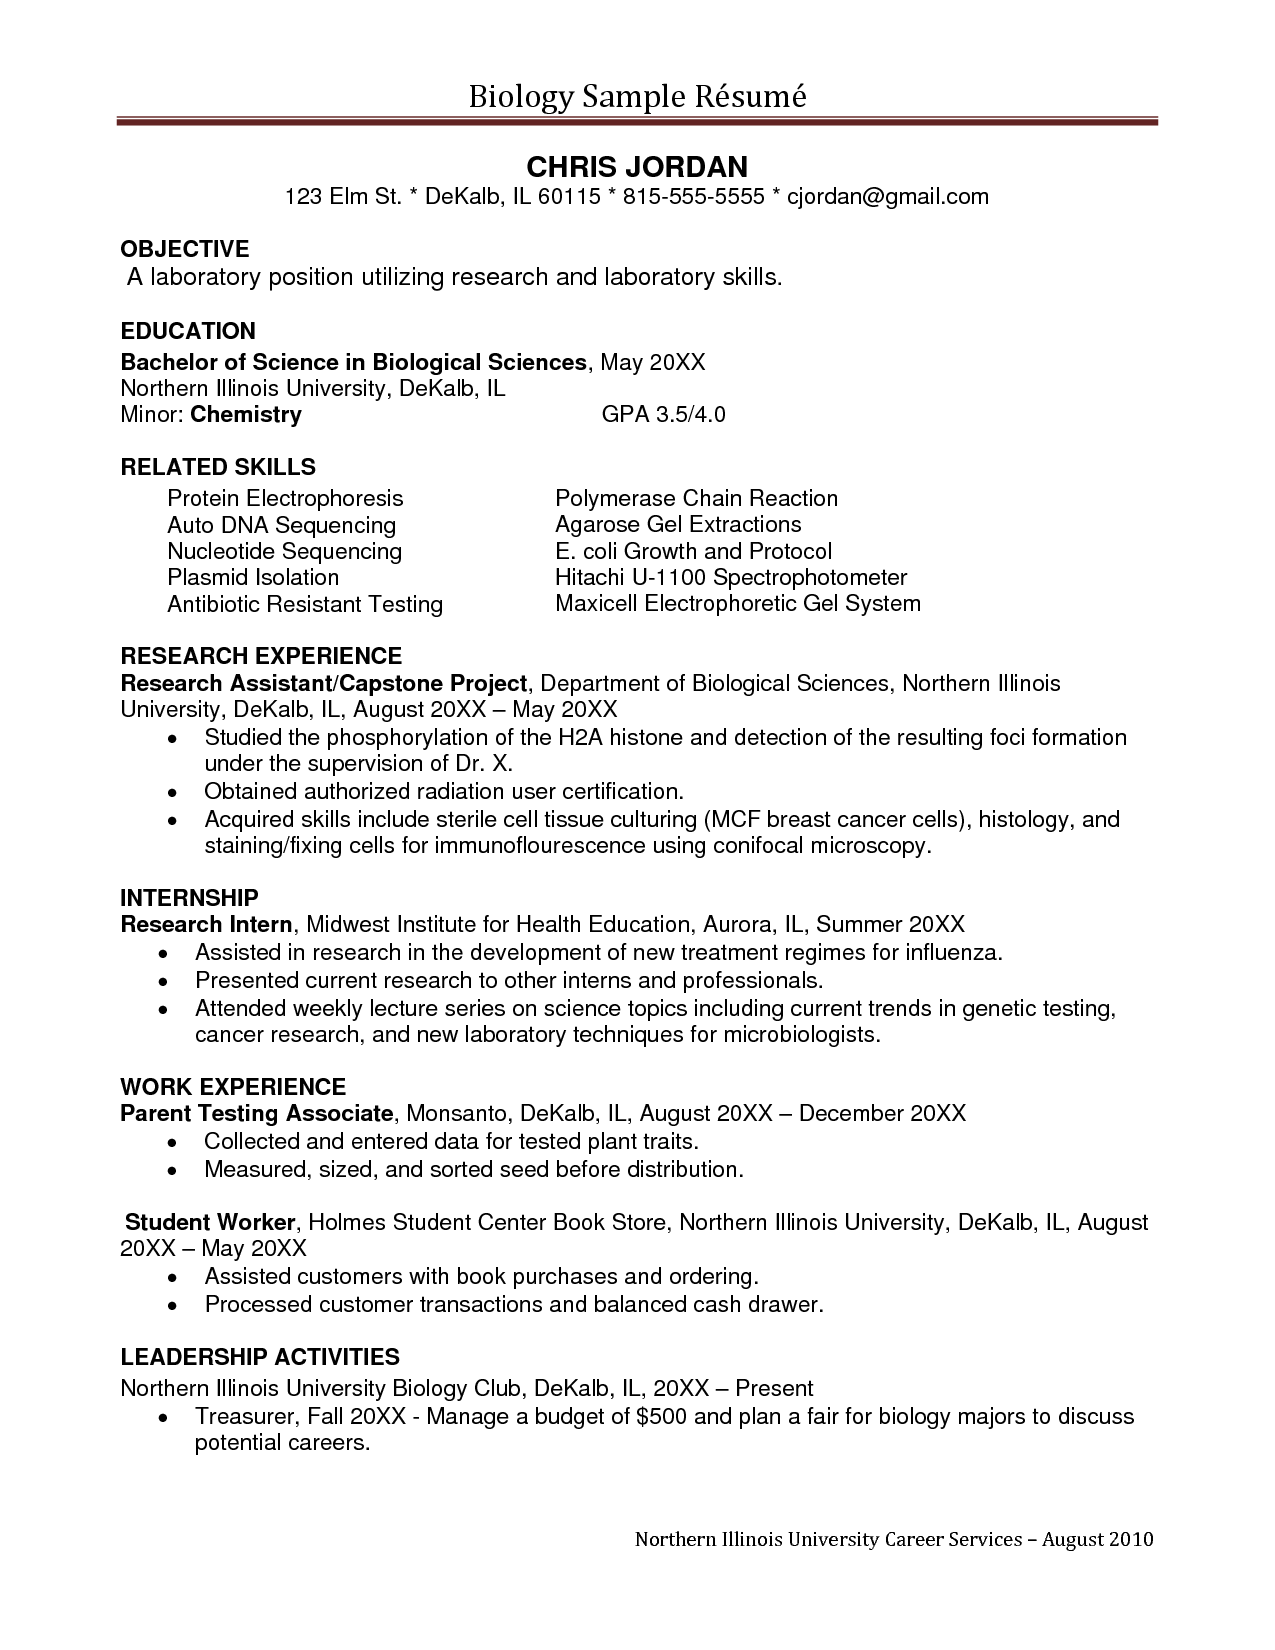 Objectives On A Resume Sample Undergraduate Research Assistant Resume Sampleĺ